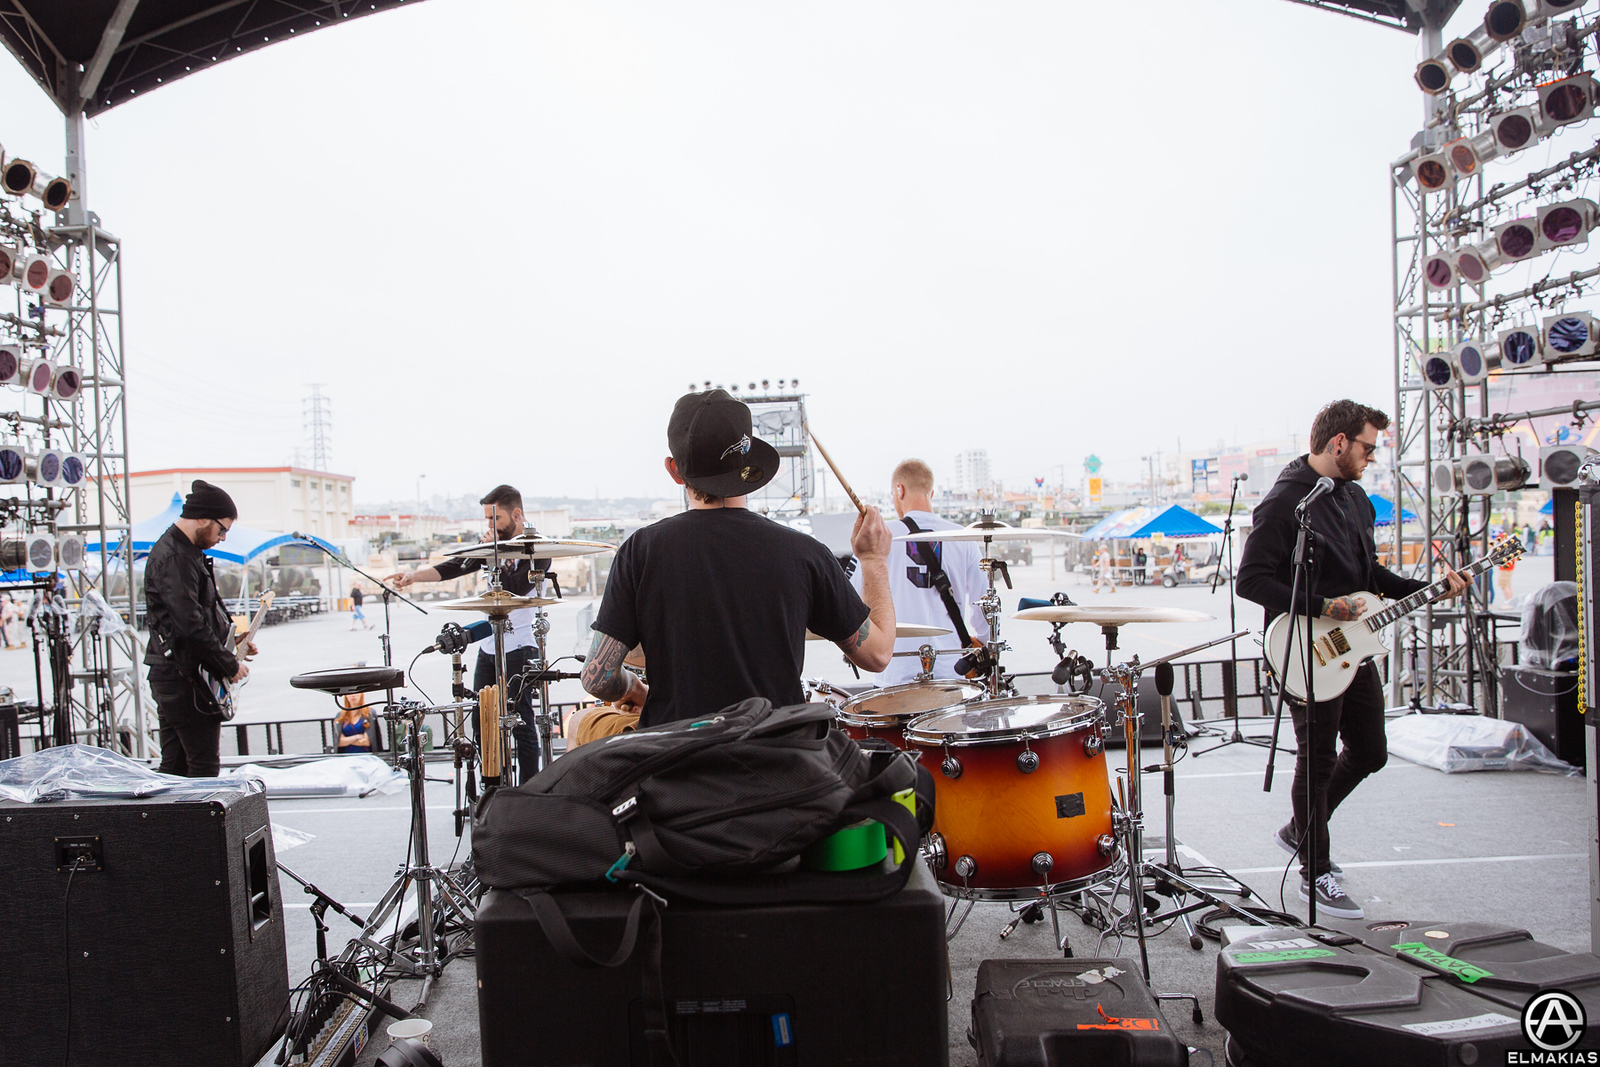 A Day To Remember soundcheck at base in Okinawa